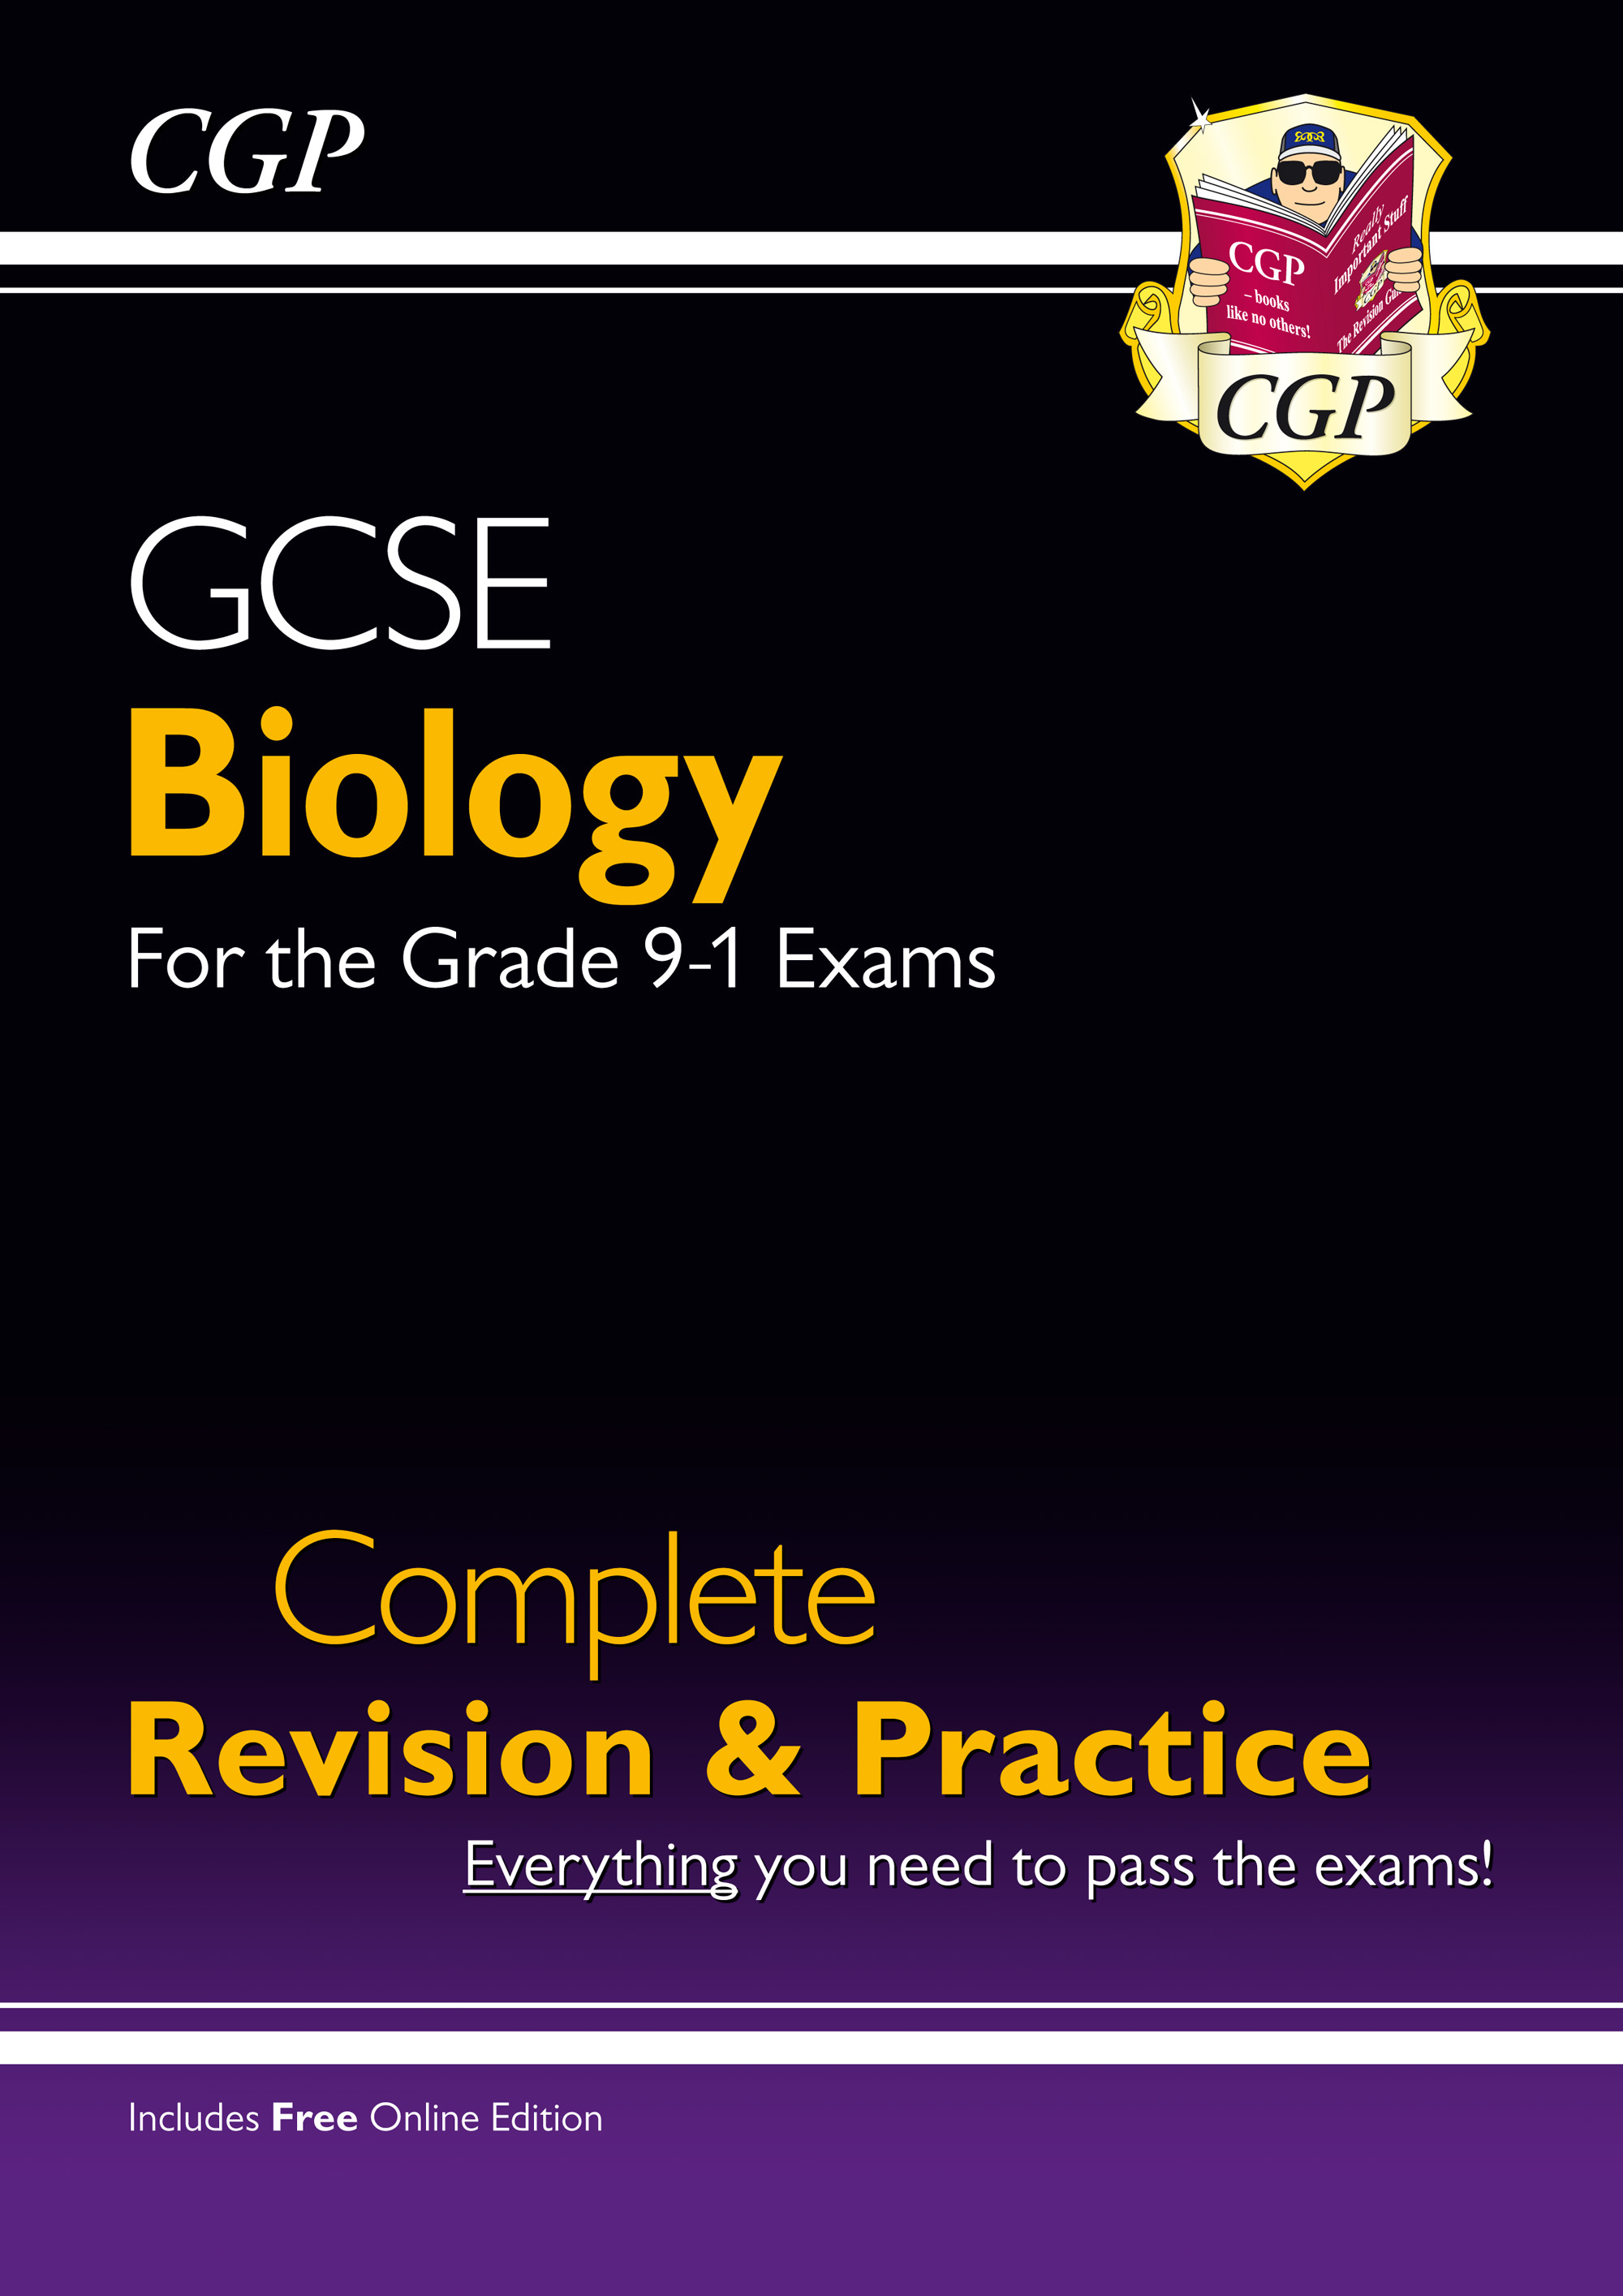 BHS45 - Grade 9-1 GCSE Biology Complete Revision & Practice with Online Edition